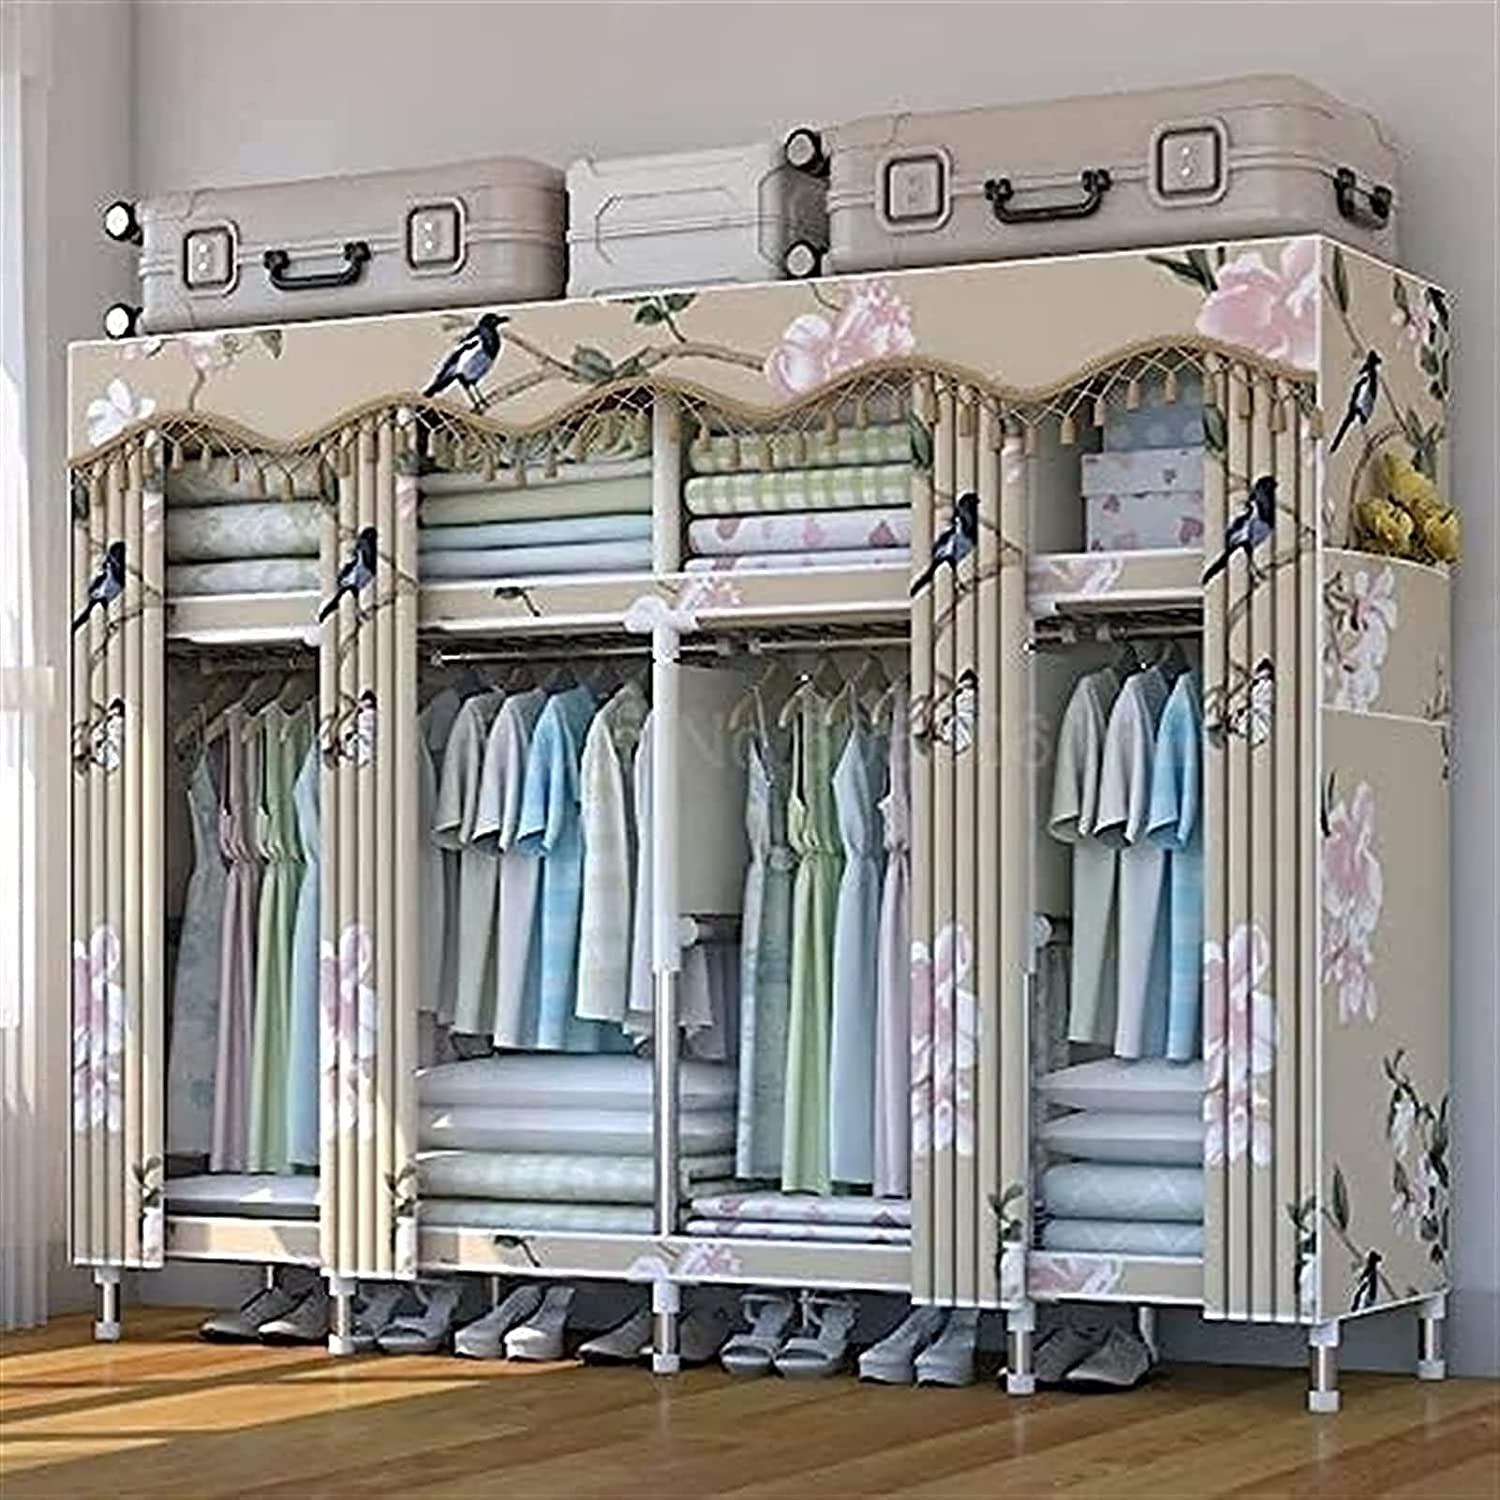 Home Max 82% OFF Double Wardrobe Storage Rack Household Rare Stainless Stee Steel